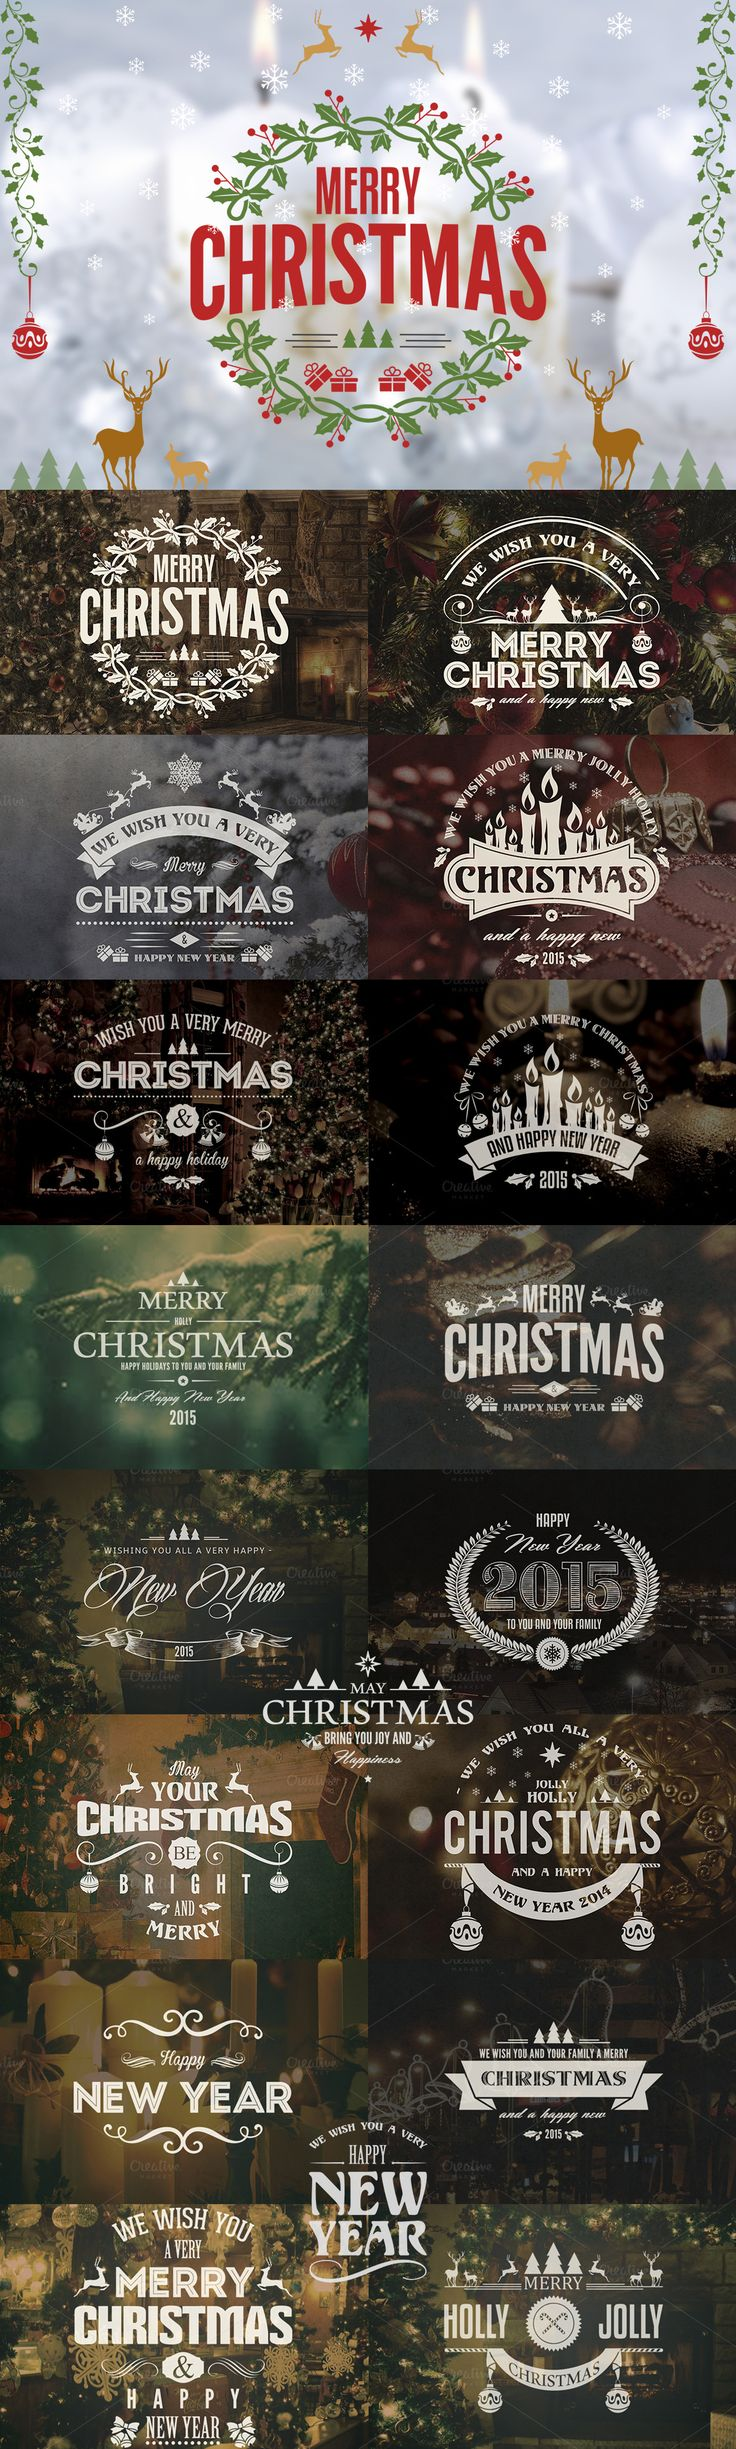 Christmas / New Year Badges & Labels Template #design Download: https://creativemarket.com/Marvels/103859-Christmas-New-Year-Badges-Labels?u=ksioks